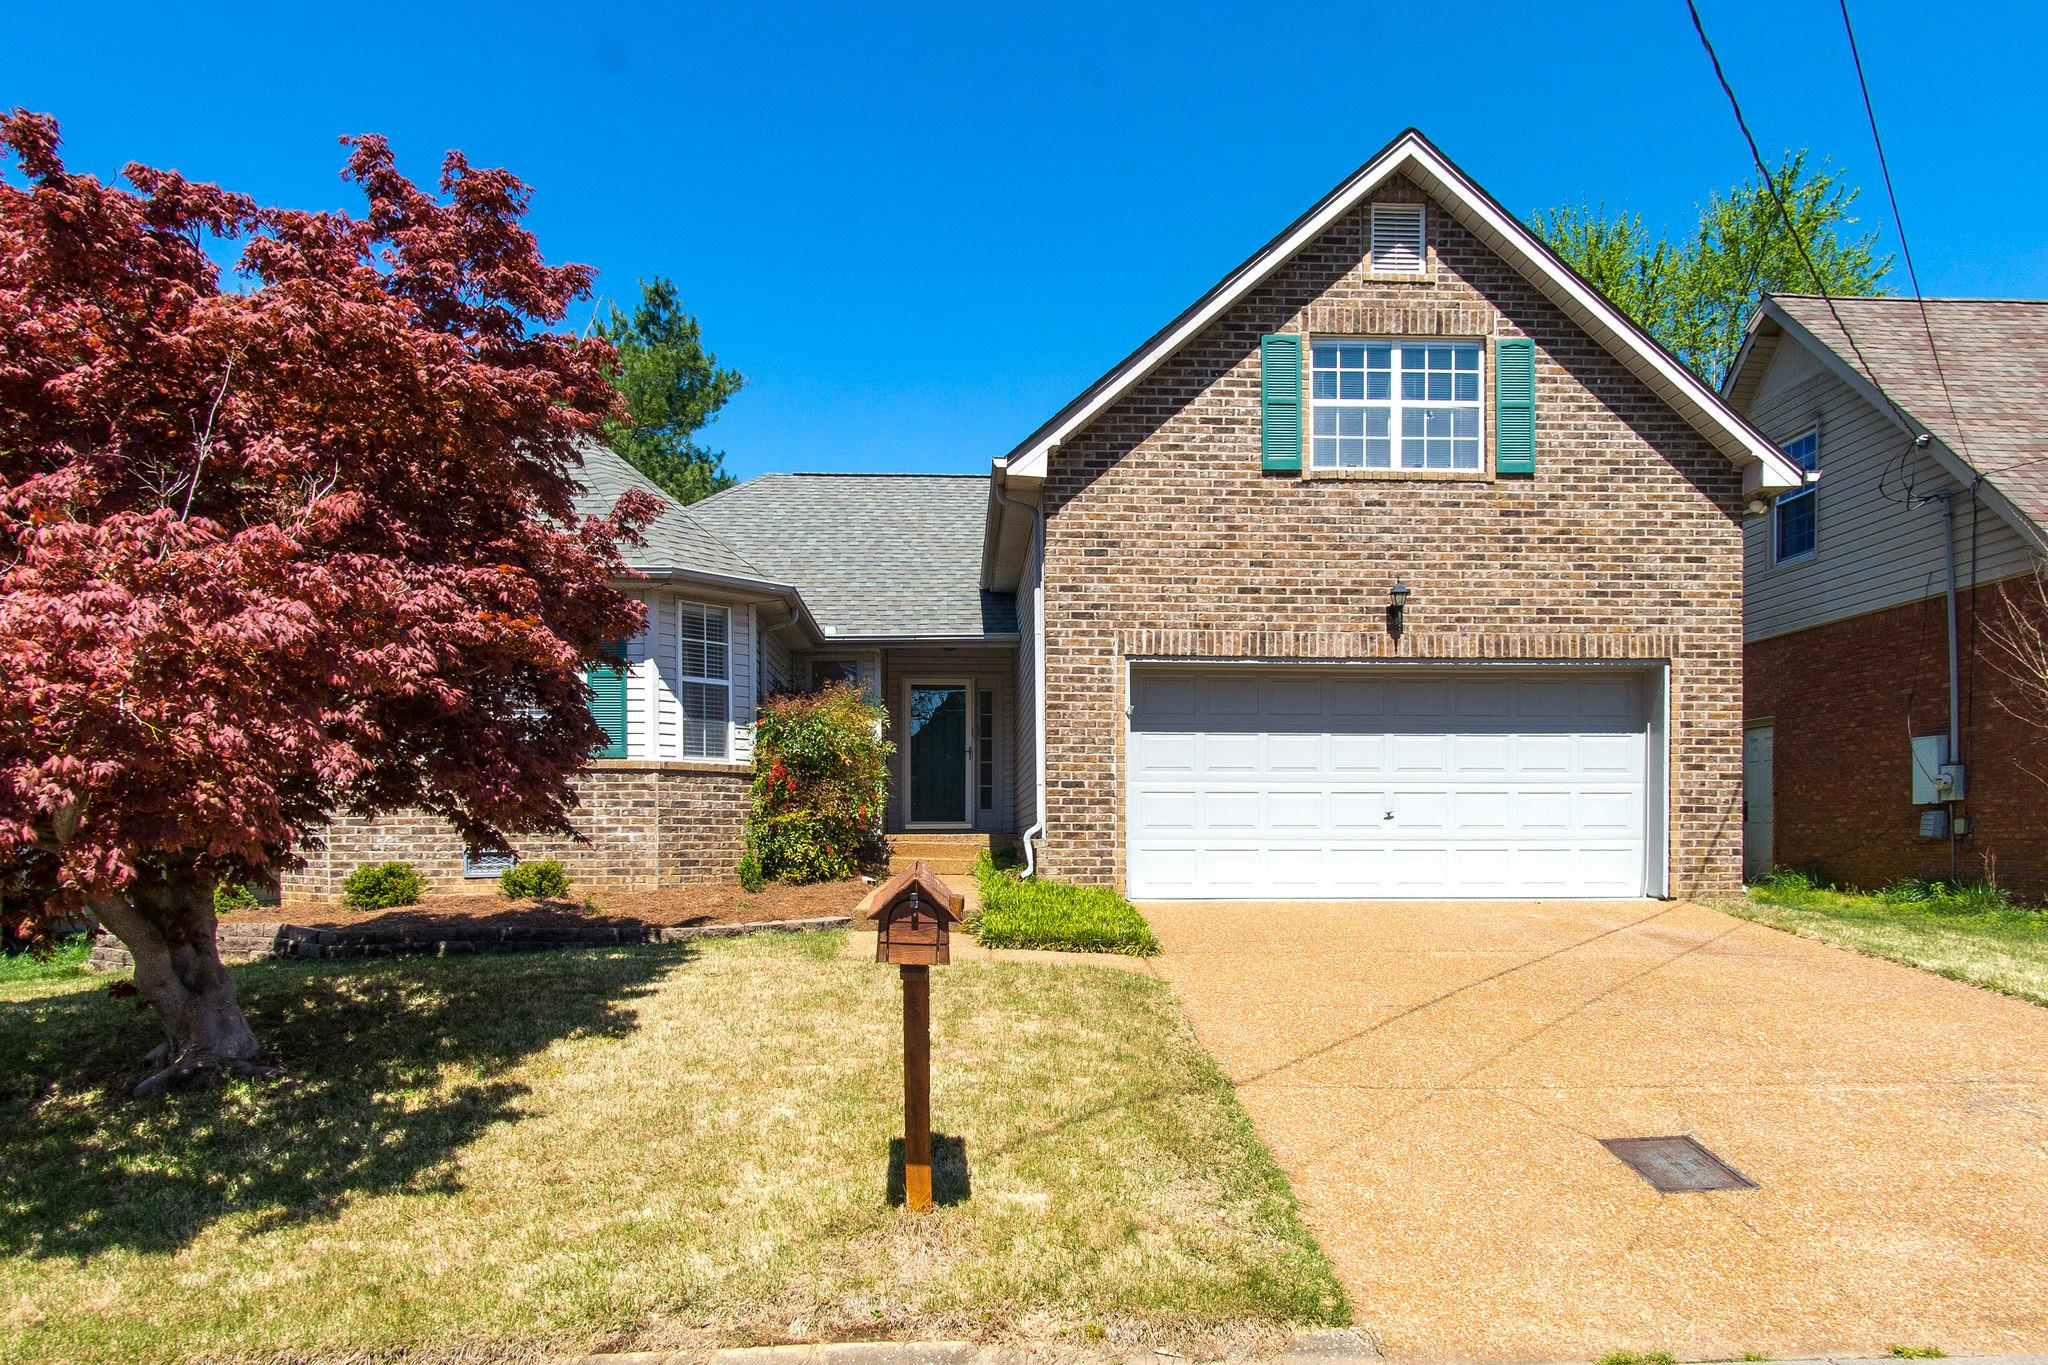 3121 Kennebeck Pl, Nashville-Antioch in Davidson County County, TN 37013 Home for Sale